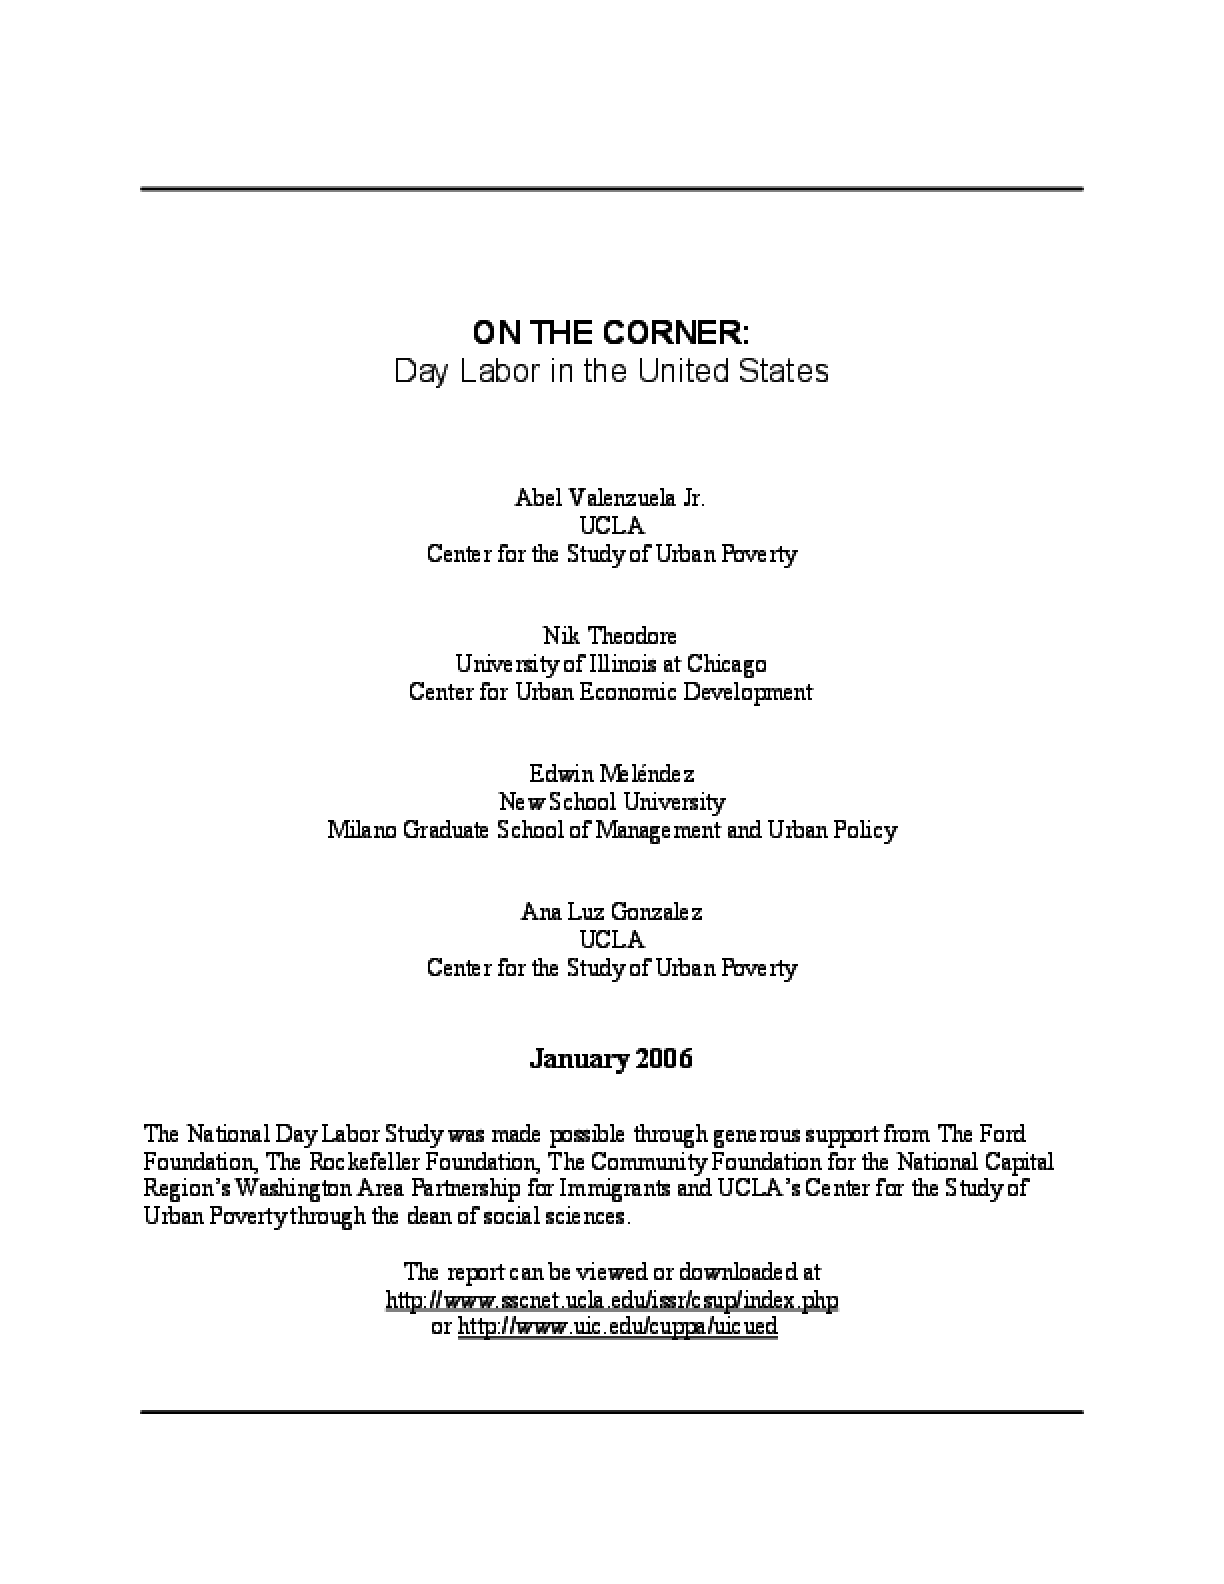 On the Corner: Day Labor in the United States